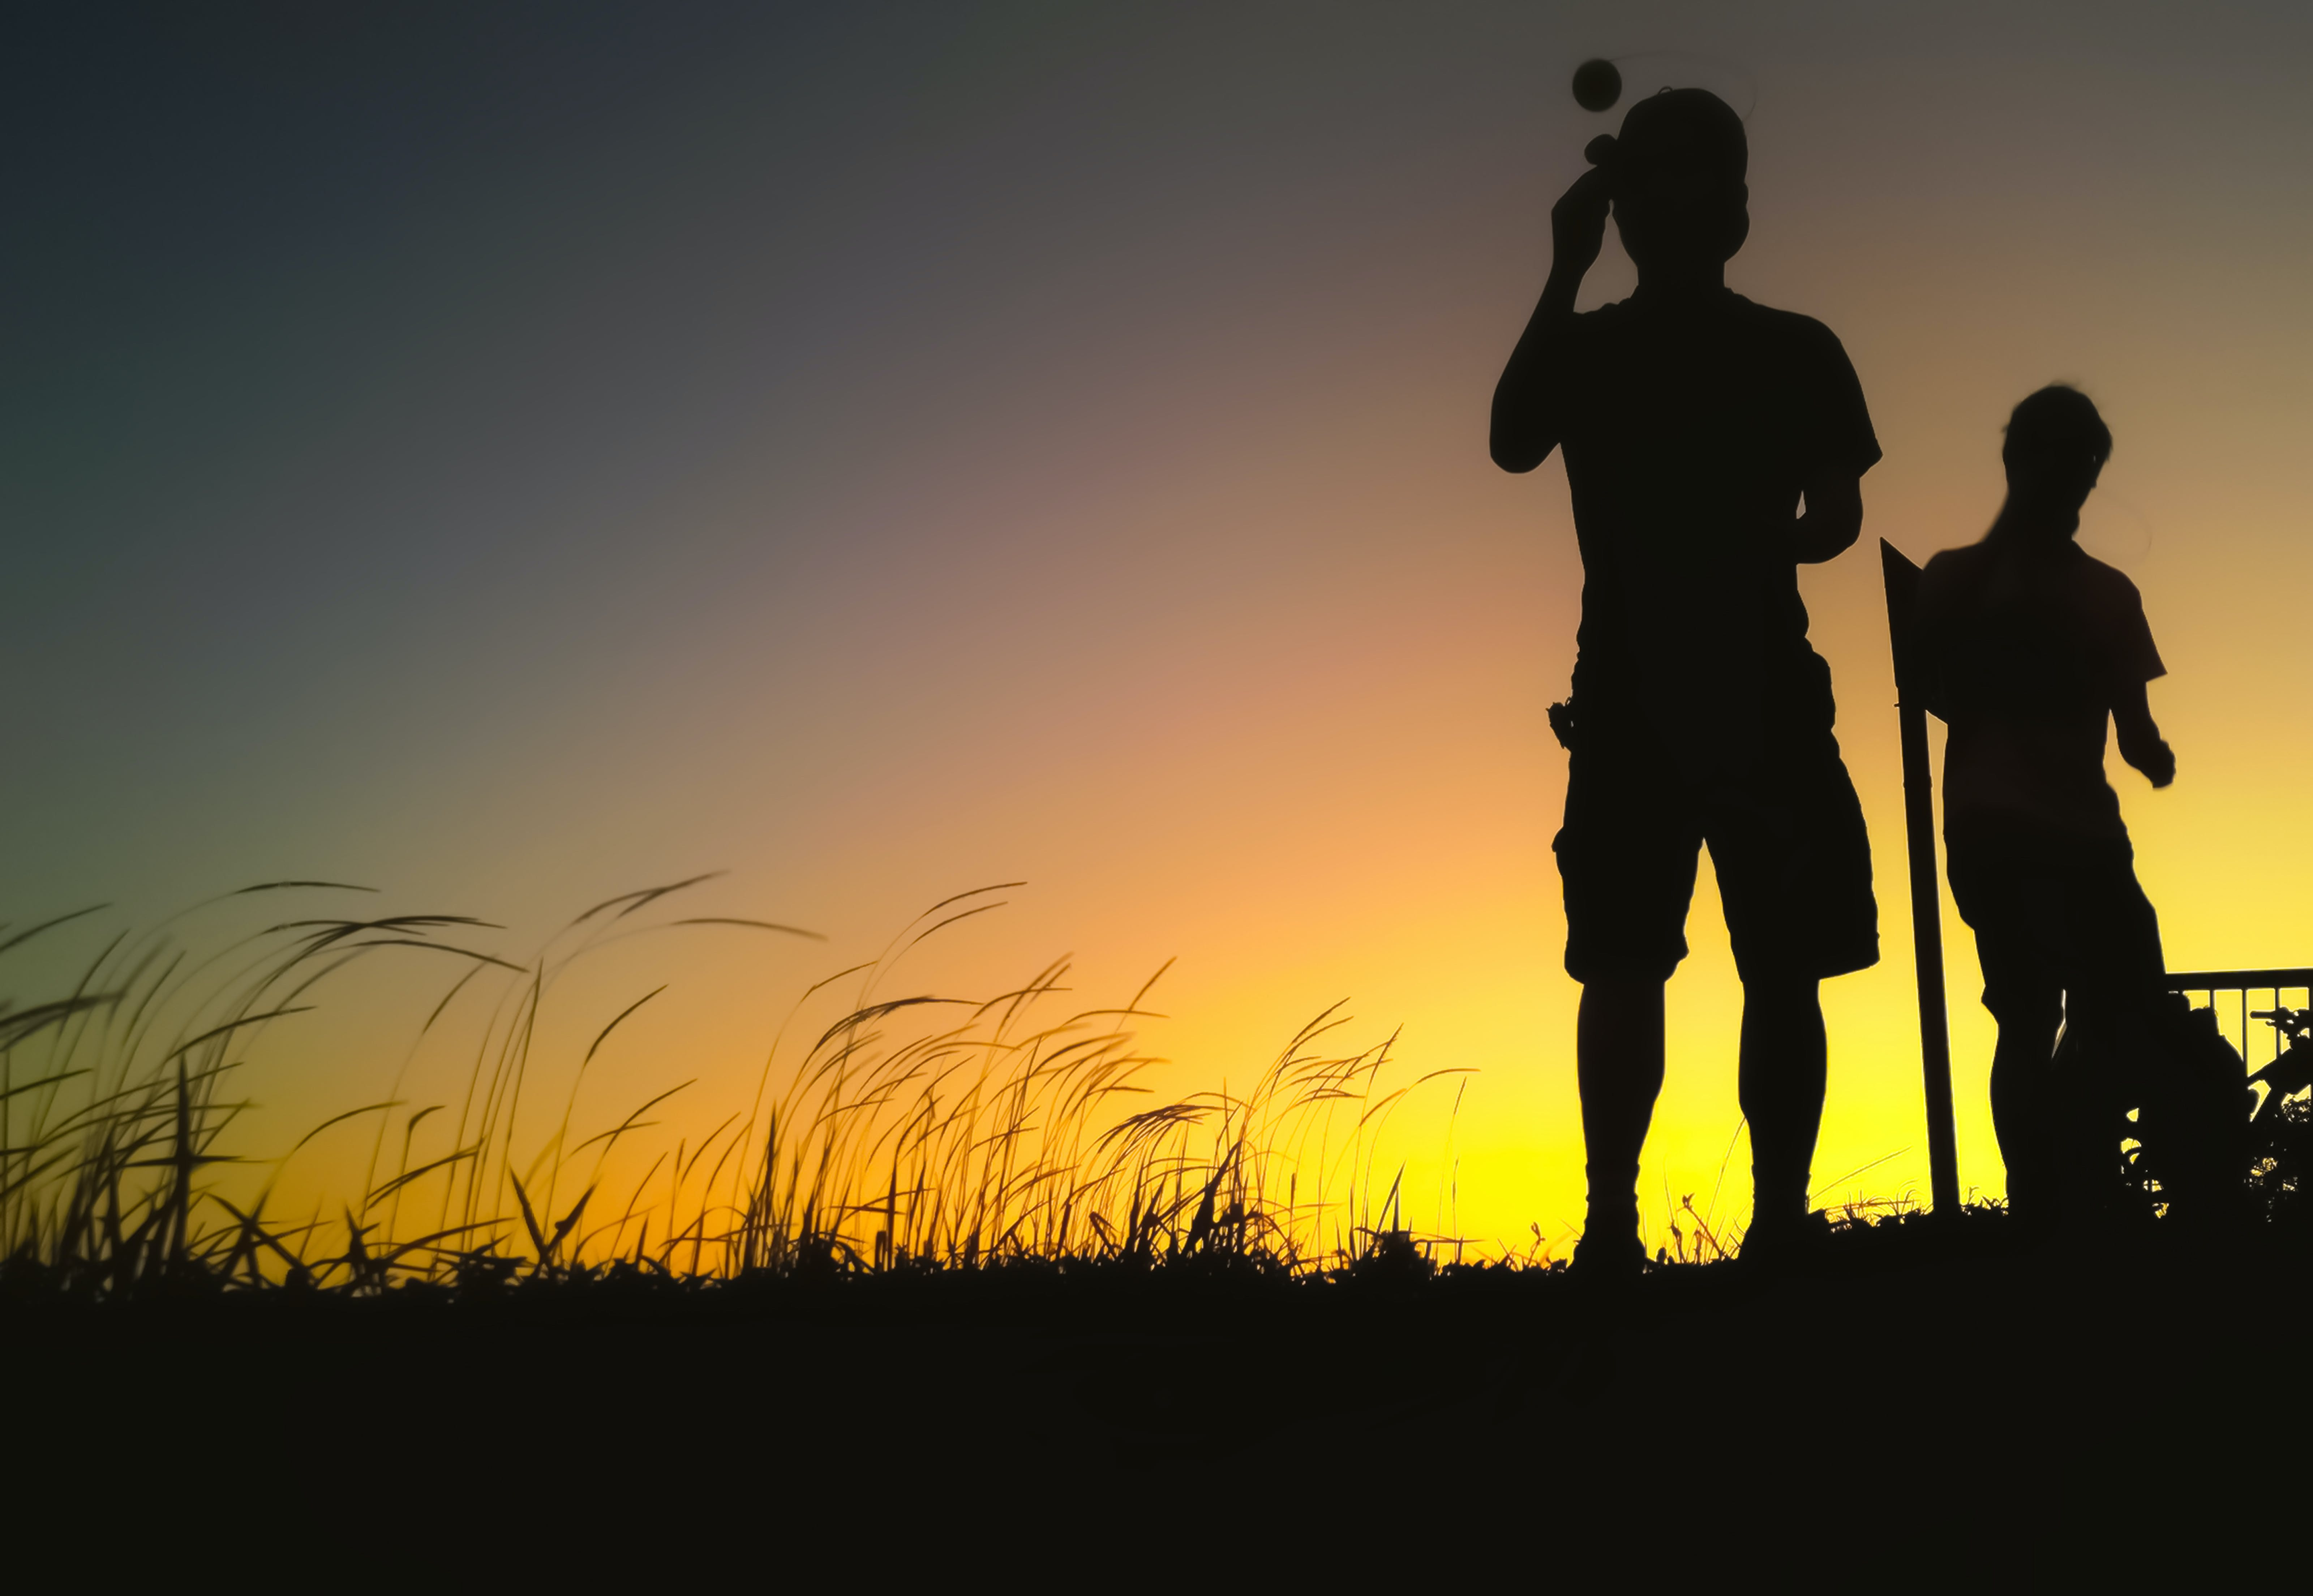 Silhouette Photography of Two People